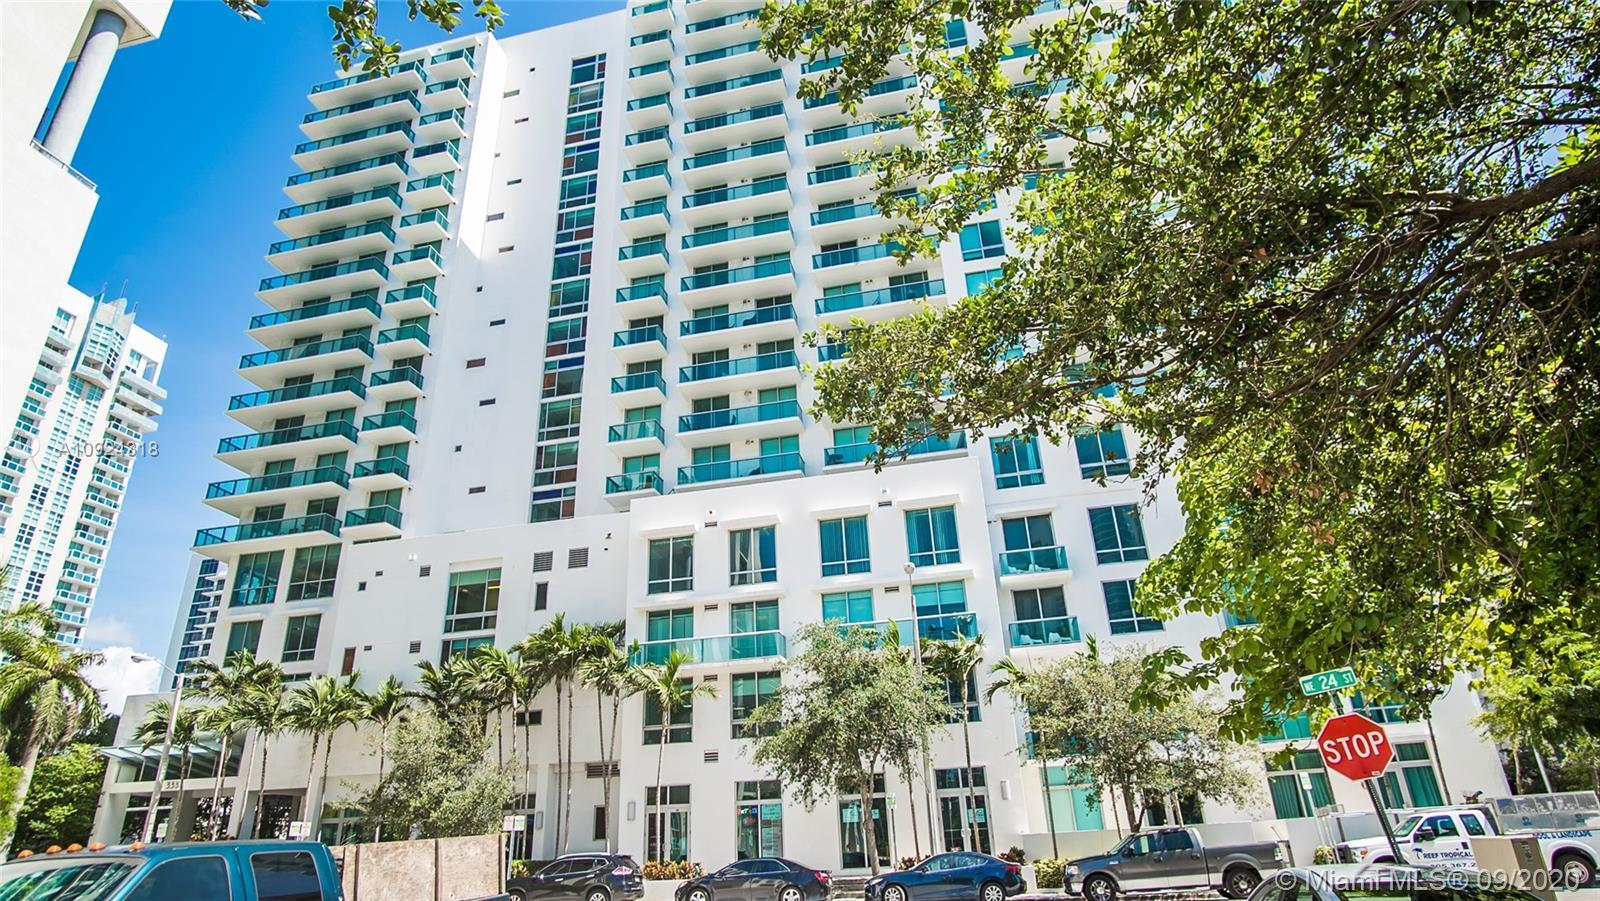 Rarely available Mr. and Ms. Clean fully equipped 1/1 + Den/Office cozy condo in Edgewater, Miami. E